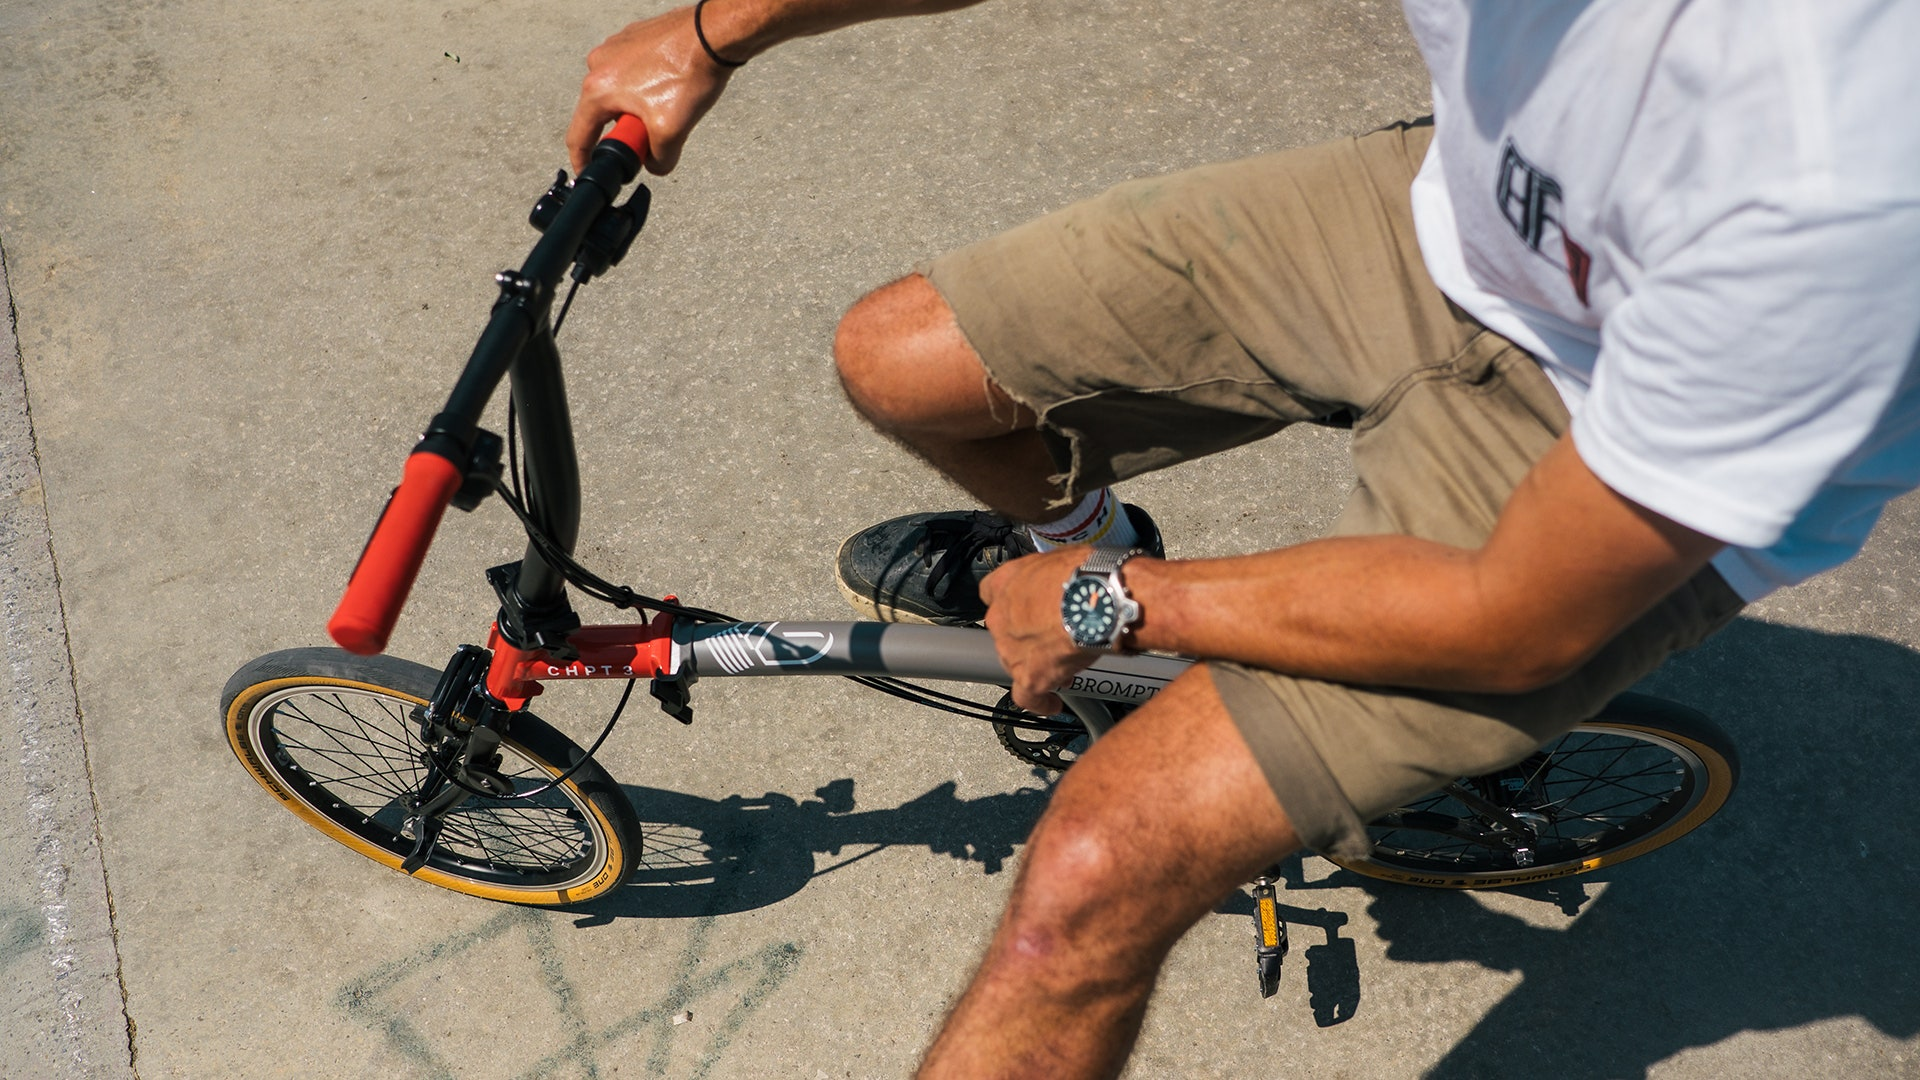 The Brompton x CHPT3 is a folding bike with style to spare - British GQ